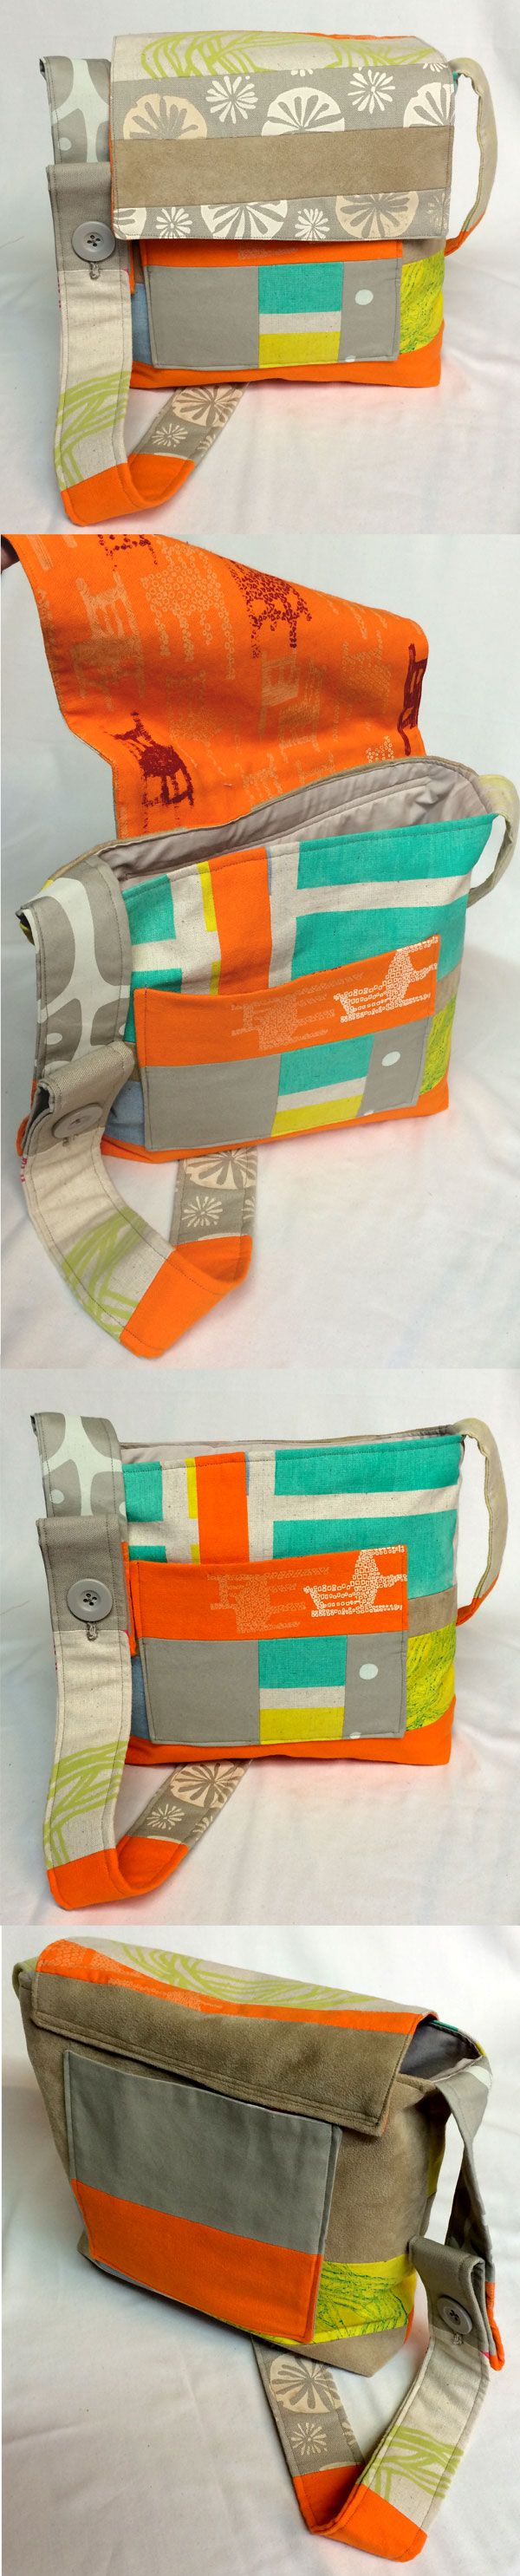 Used remnants from my own printed textiles to create this messenger bag. Thanks to http://freespiritfabric.blogspot.com.au/2012/09/so-fabric-designer-and-sewist-walked.html?m=1 for the free pattern.